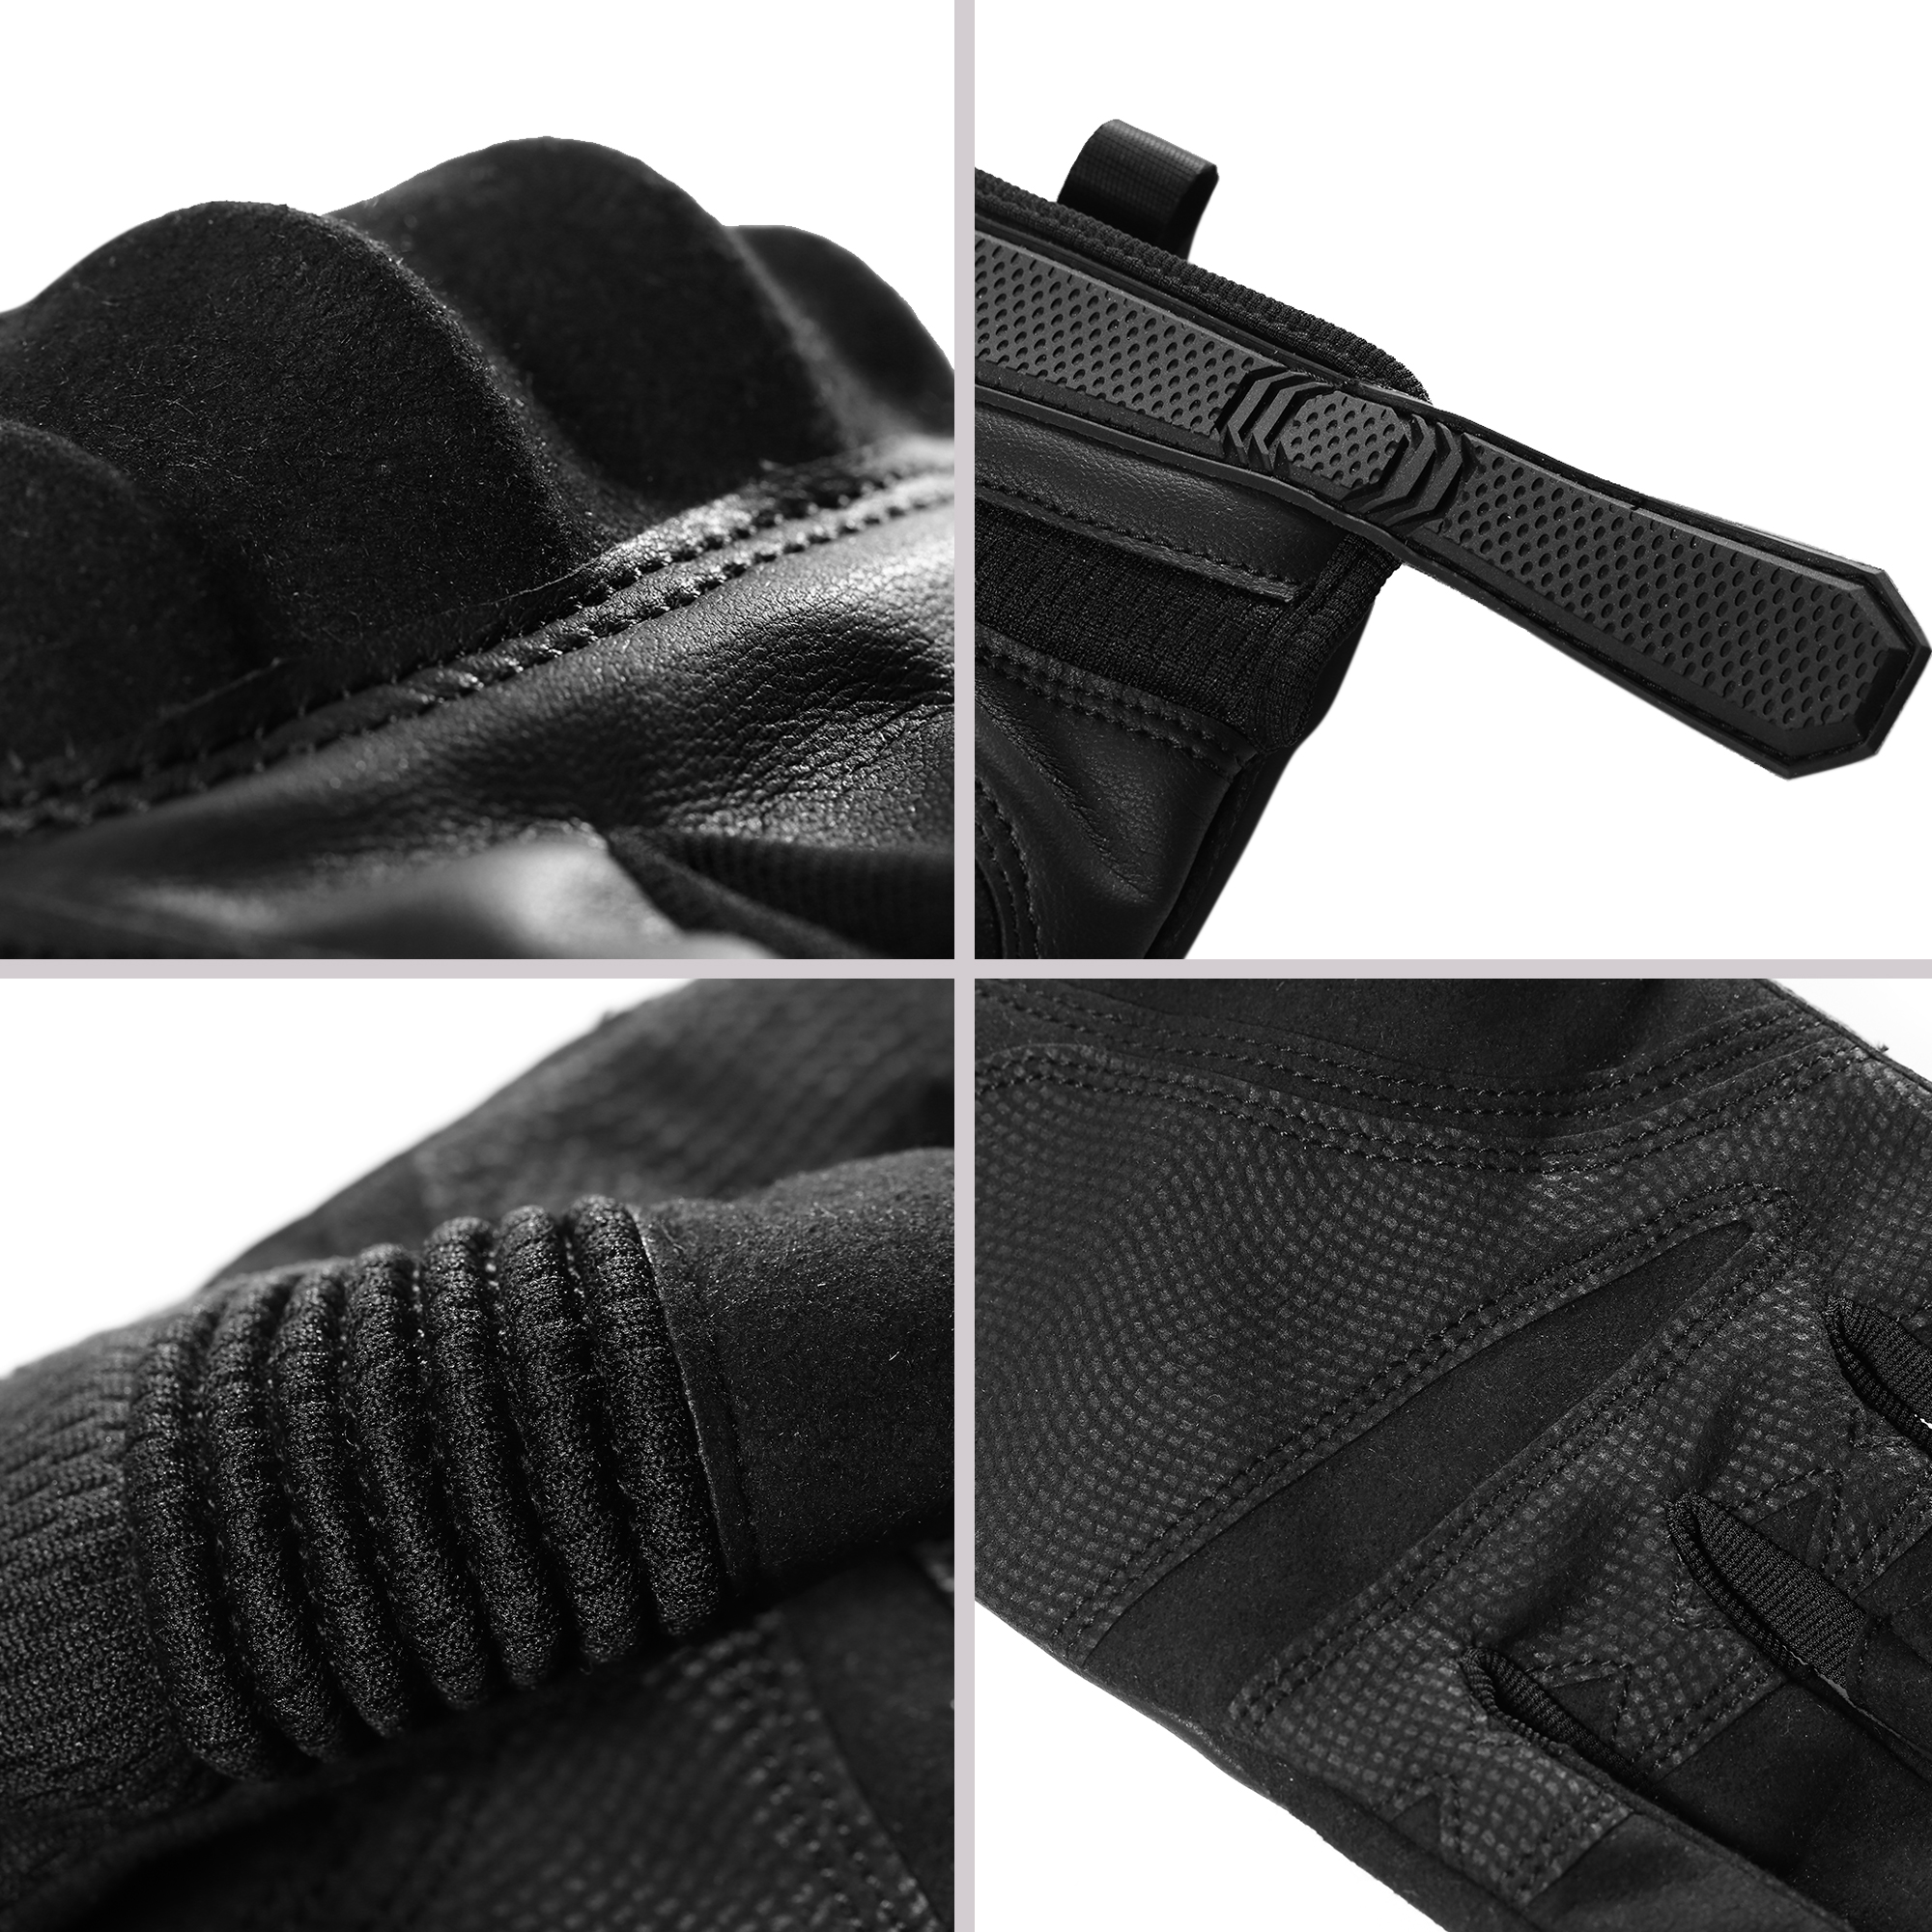 Image 4 - Tactical Military Full Finger Gloves Leather Airsoft Army Combat Touch Screen Anti Skid Hard Knuckle Protective Gear Gloves Men-in Men's Gloves from Apparel Accessories on AliExpress